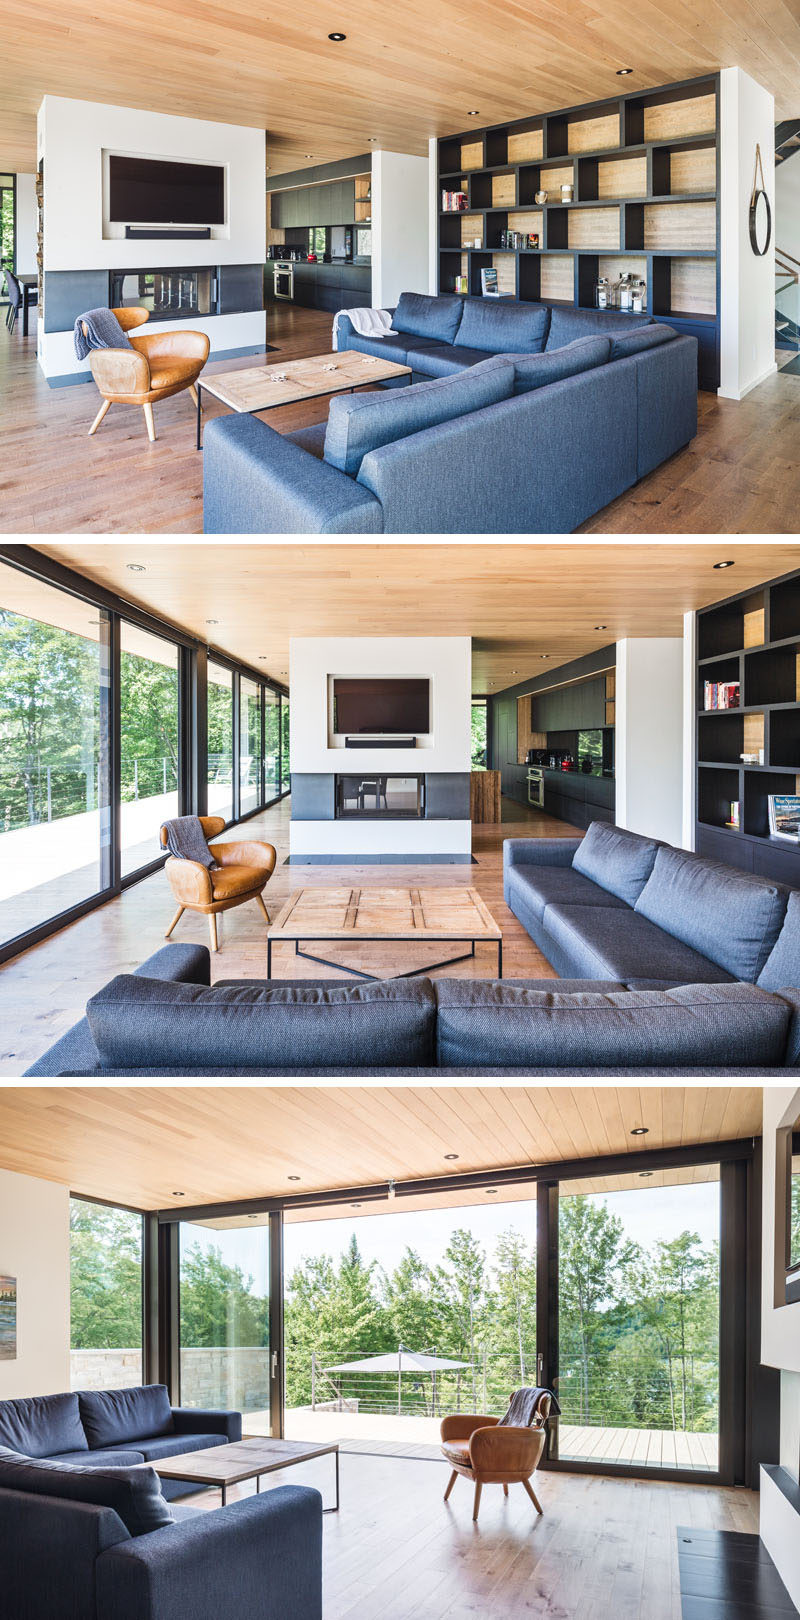 In this contemporary living room, there's a double-sided fireplace with a custom-designed cut-out for the television, and next to the couch is a floor-to-ceiling bookshelf.